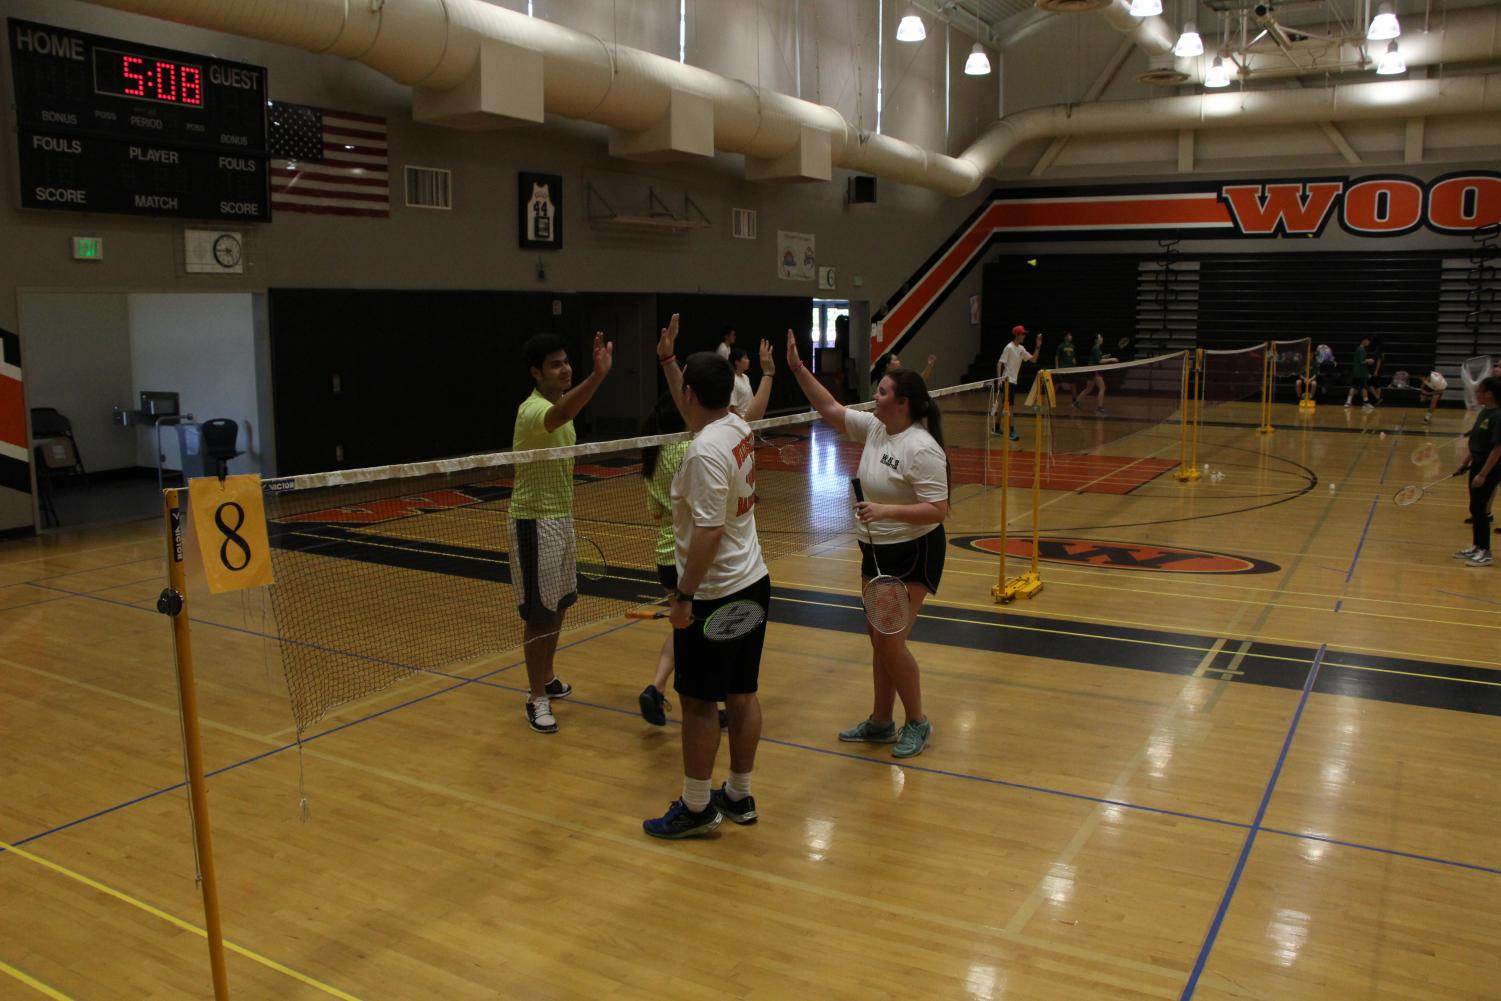 The Woodside badminton team shows their sportsmanship and support of each other.